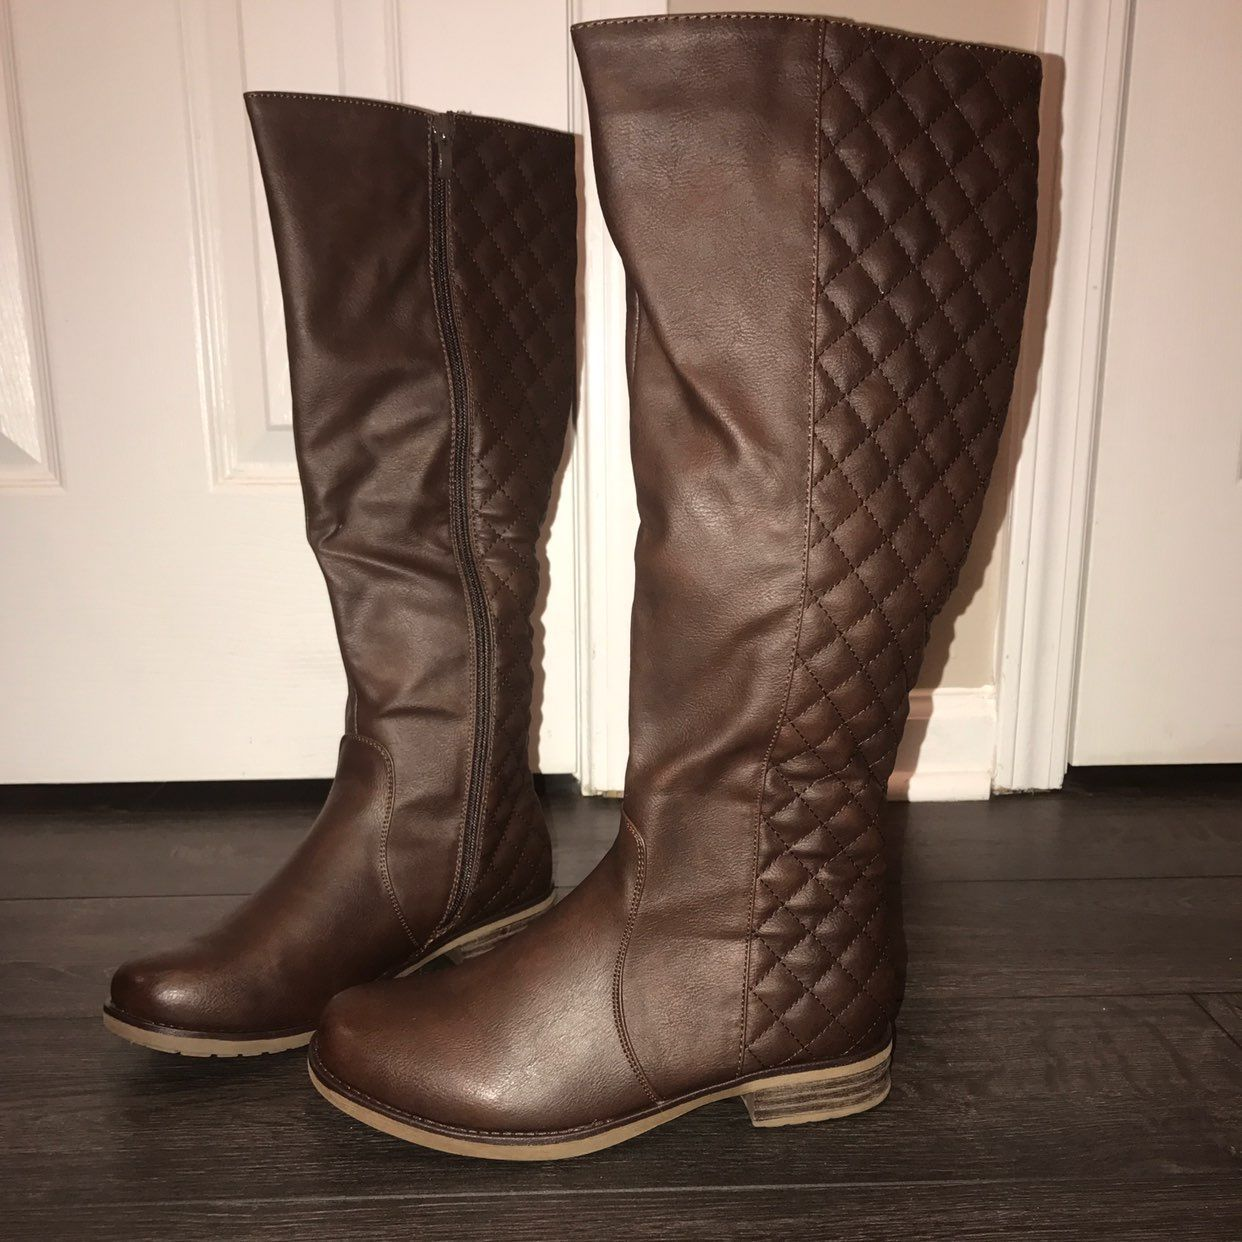 Chocolate Brown Quilted Riding Boots - Mercari: BUY & SELL THINGS ... : brown quilted riding boots - Adamdwight.com